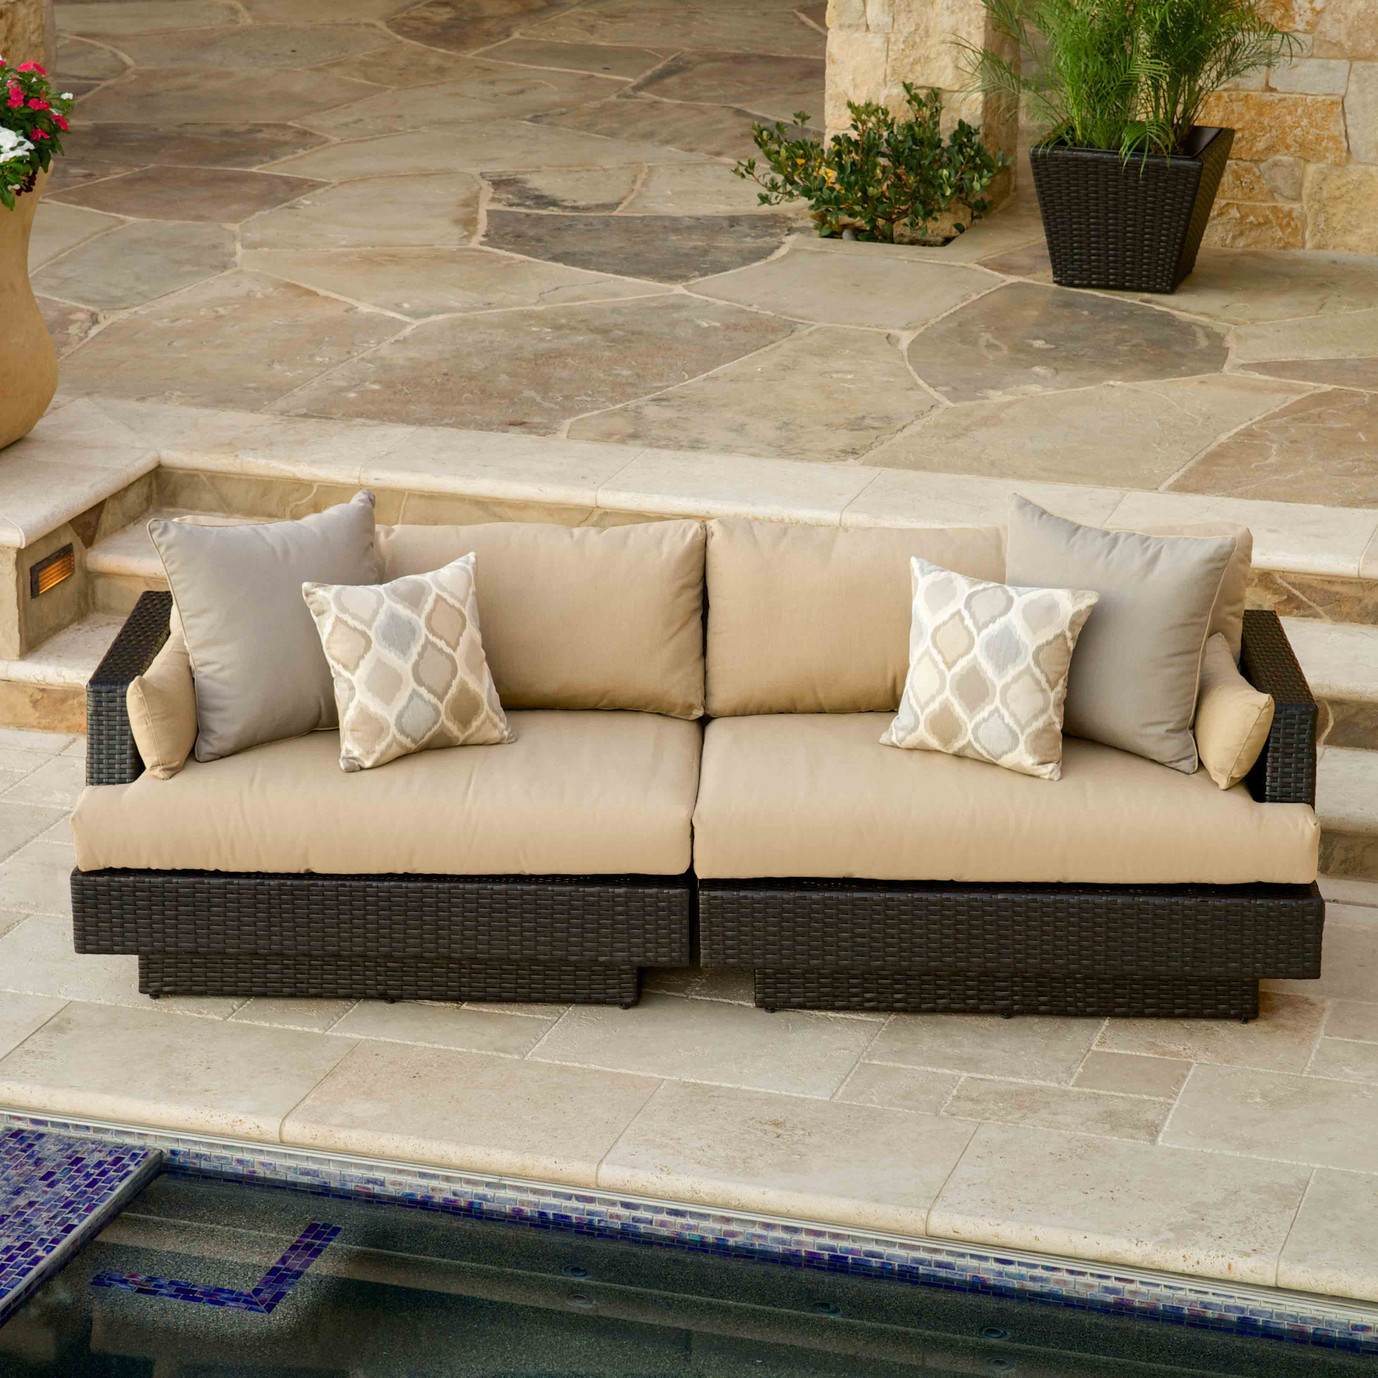 Portofino™ Comfort 7pc Modular Sectional - Heather Beige